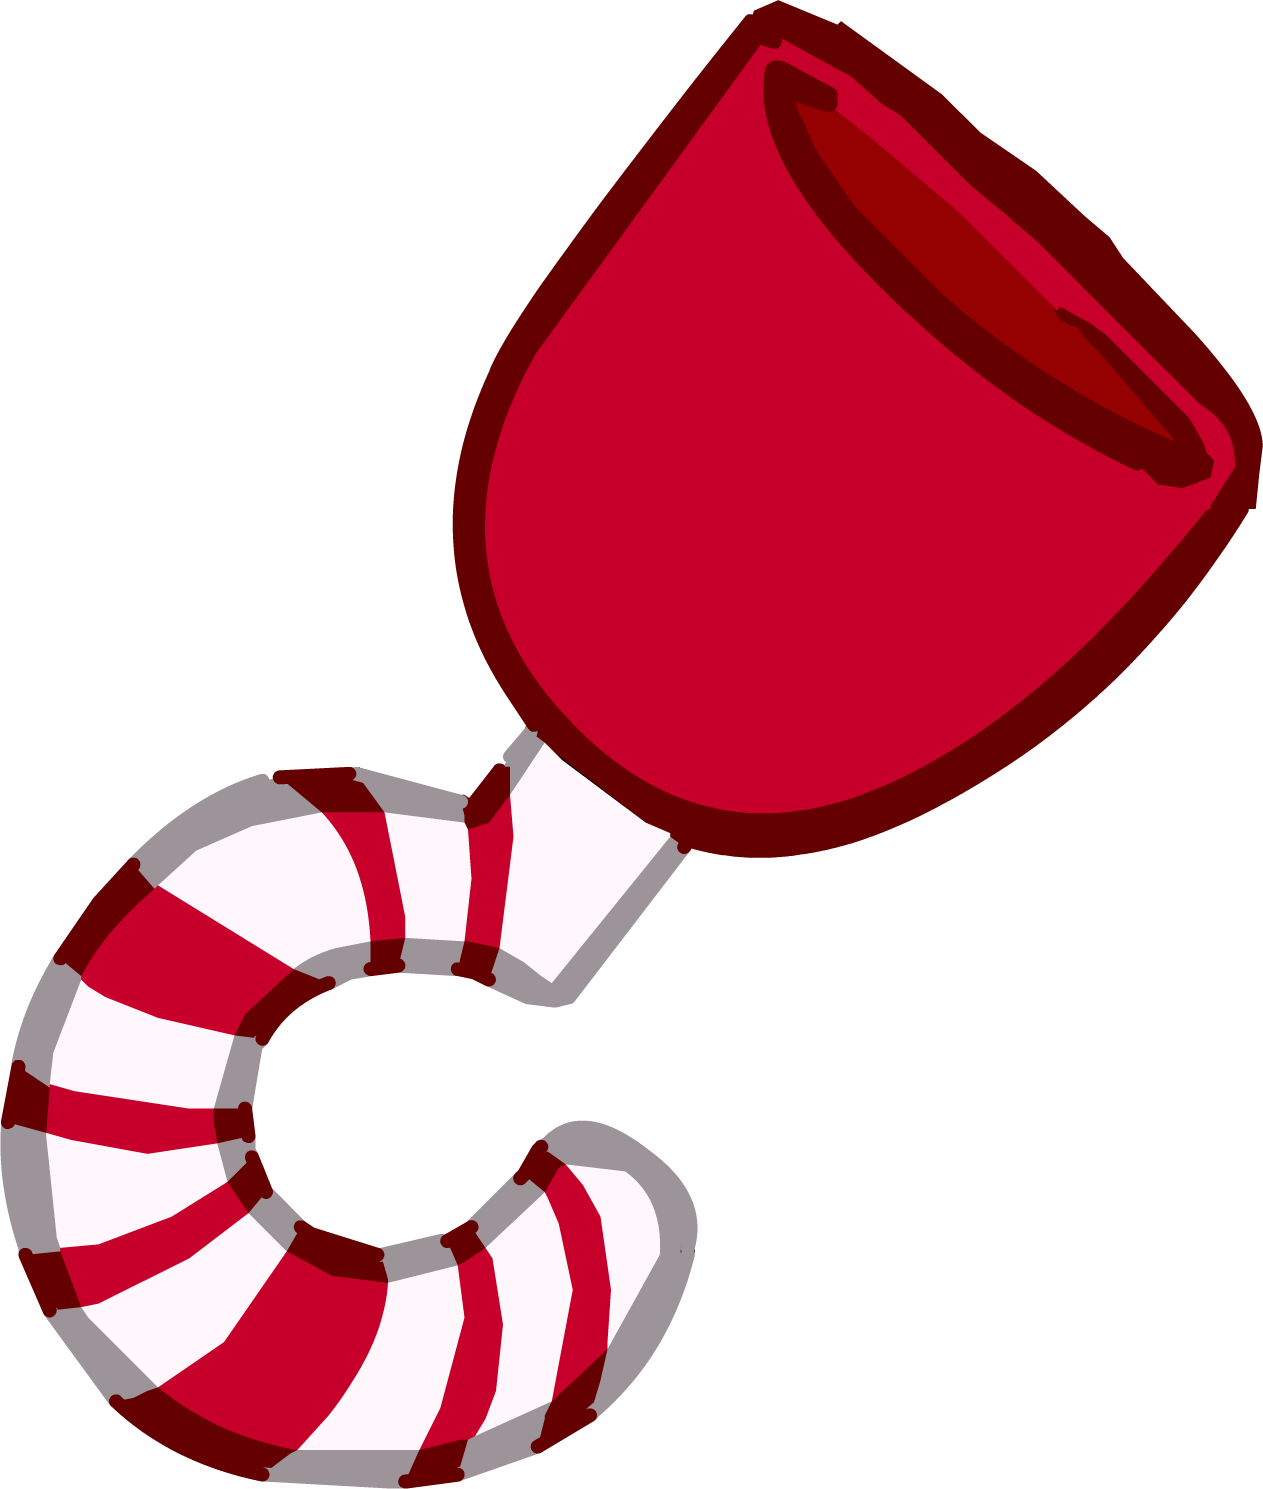 Pirate hook png. Image candy club penguin